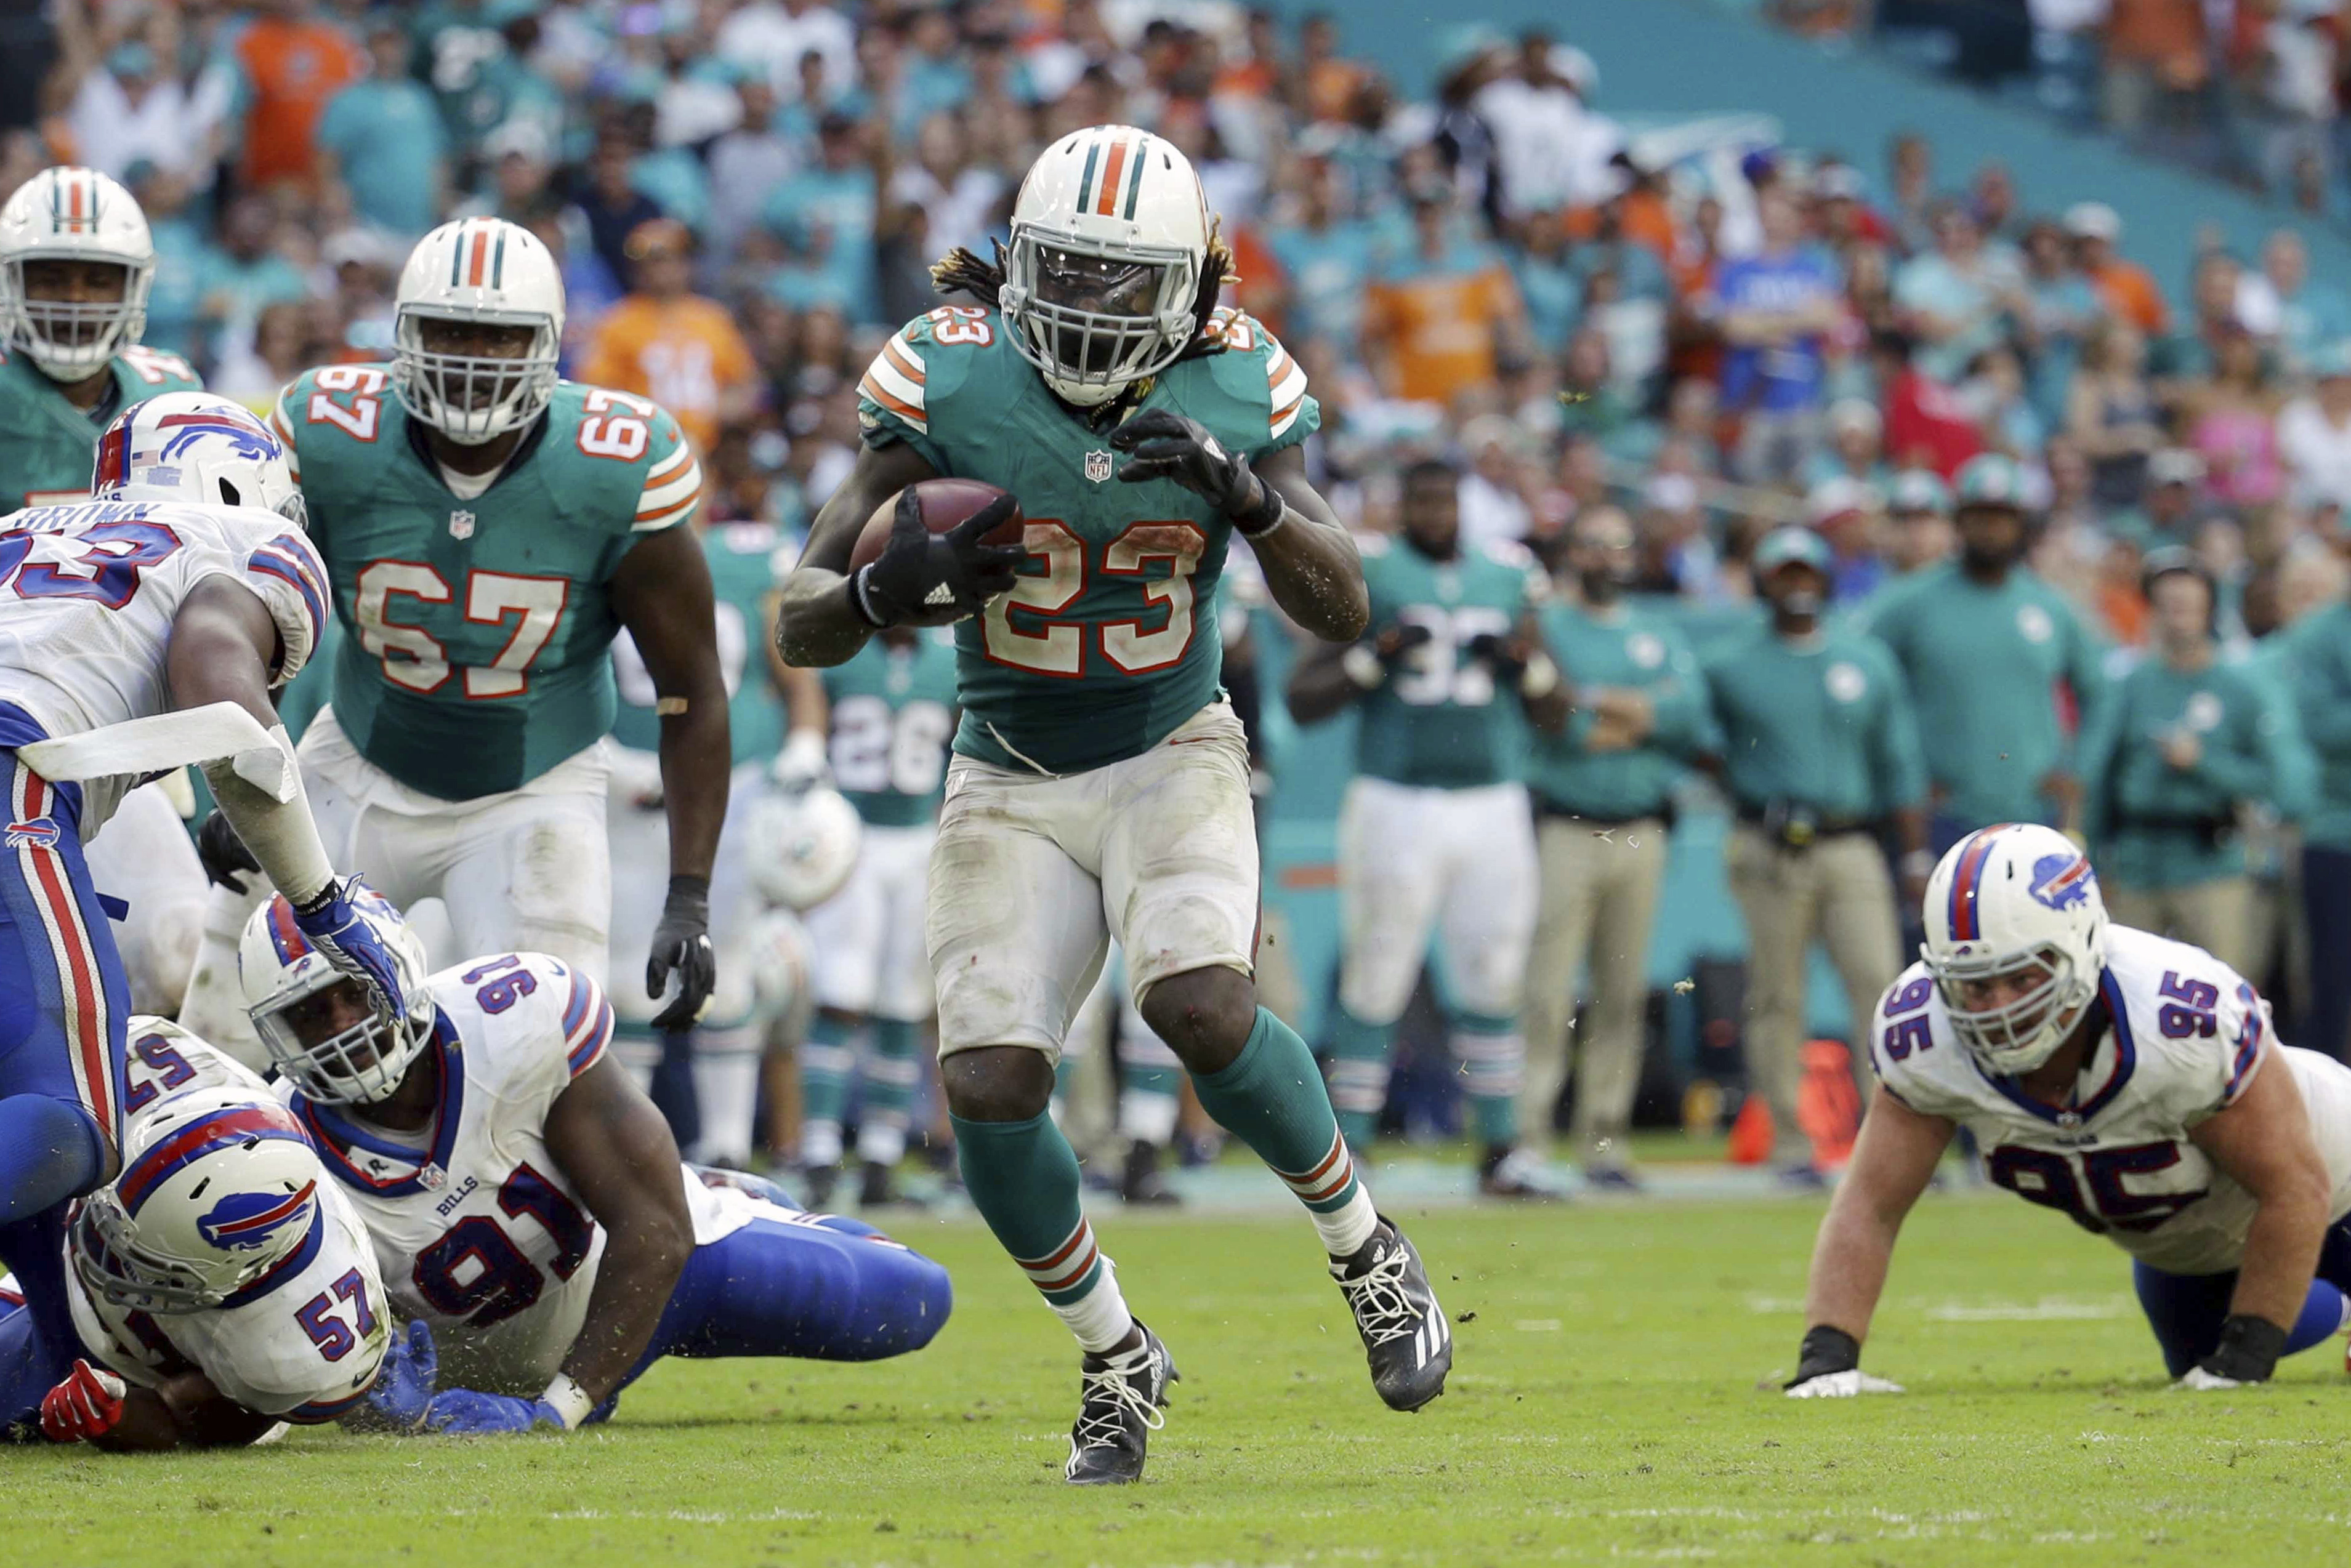 FILE - In this Oct. 23, 2016, file photo, Miami Dolphins running back Jay Ajayi (23) runs the ball during the second half of an NFL football gam against the Buffalo Bills, in Miami Gardens, Fla. Ajayi offered to buy his blockers dinner after his first car